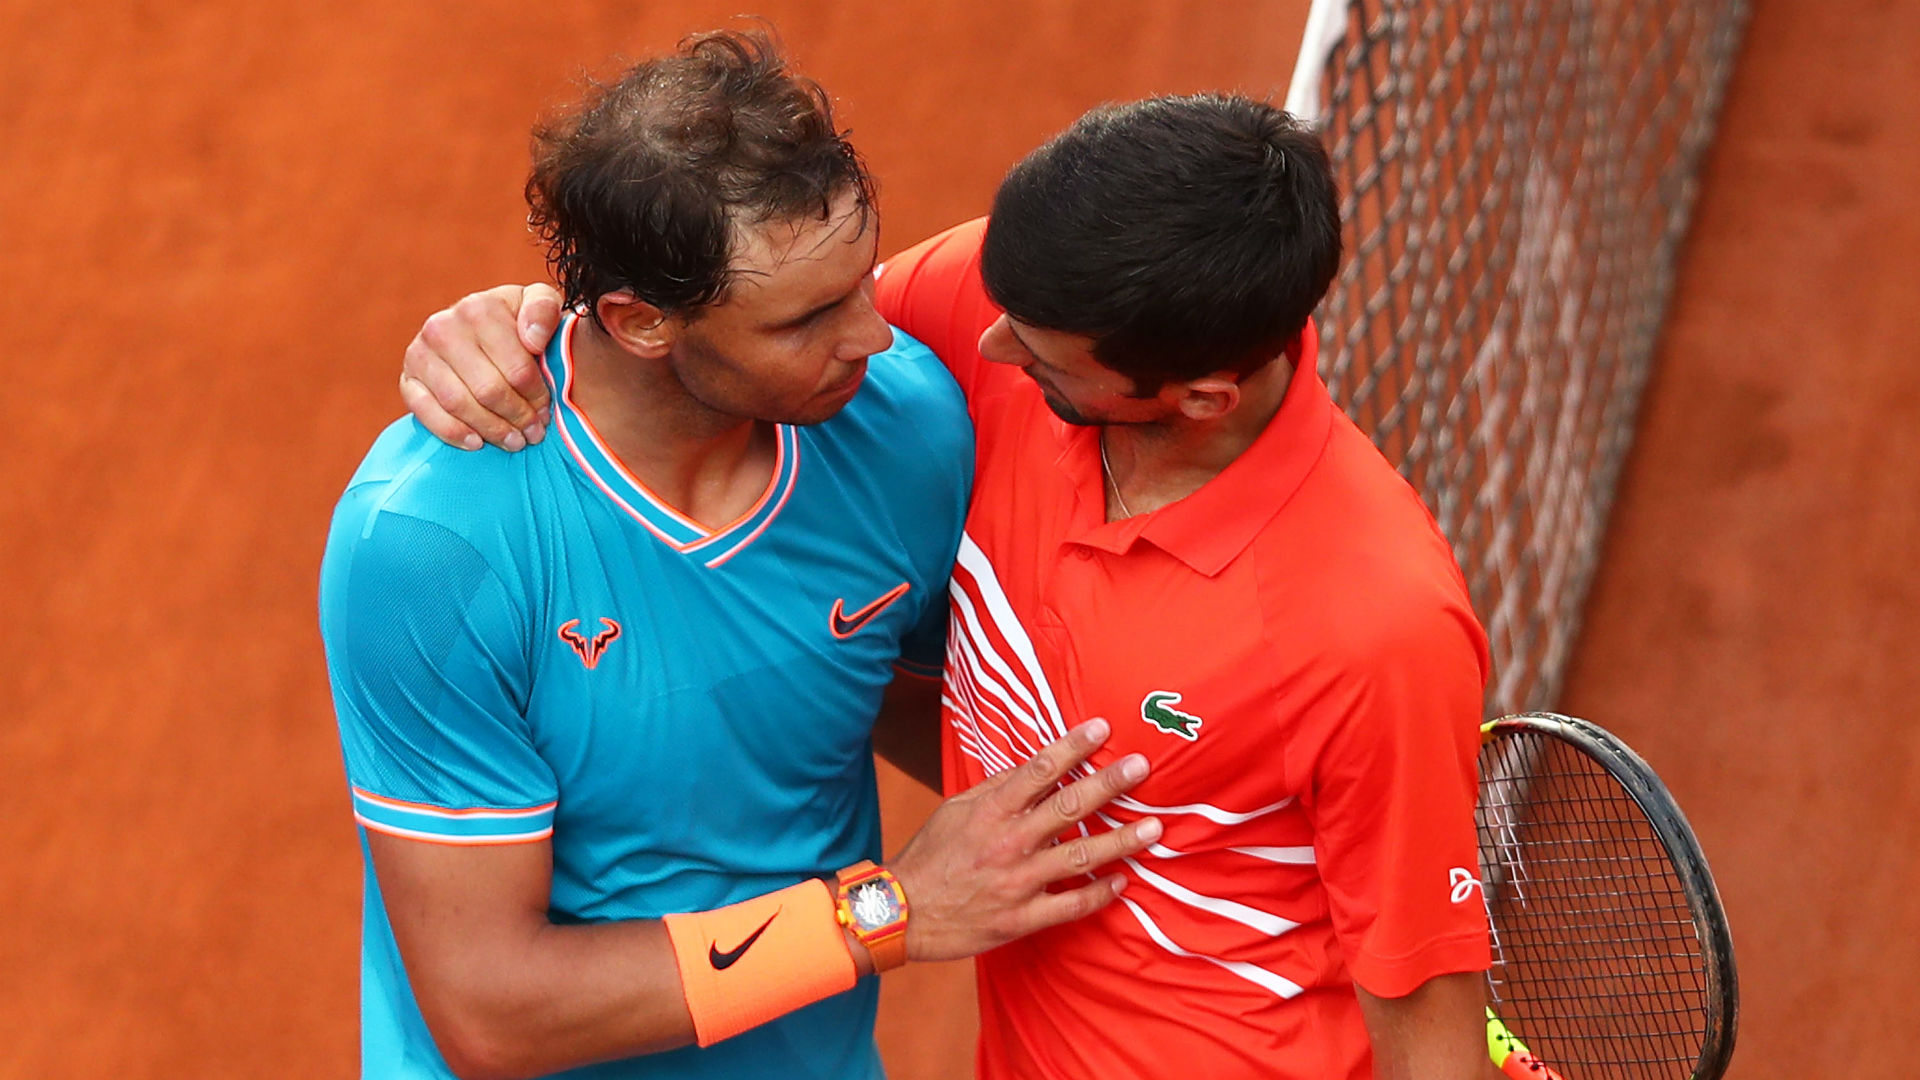 Rafael Nadal is fully committed to ending 2019 at the top of the ATP world rankings, so long as he can recover from an abdominal injury.